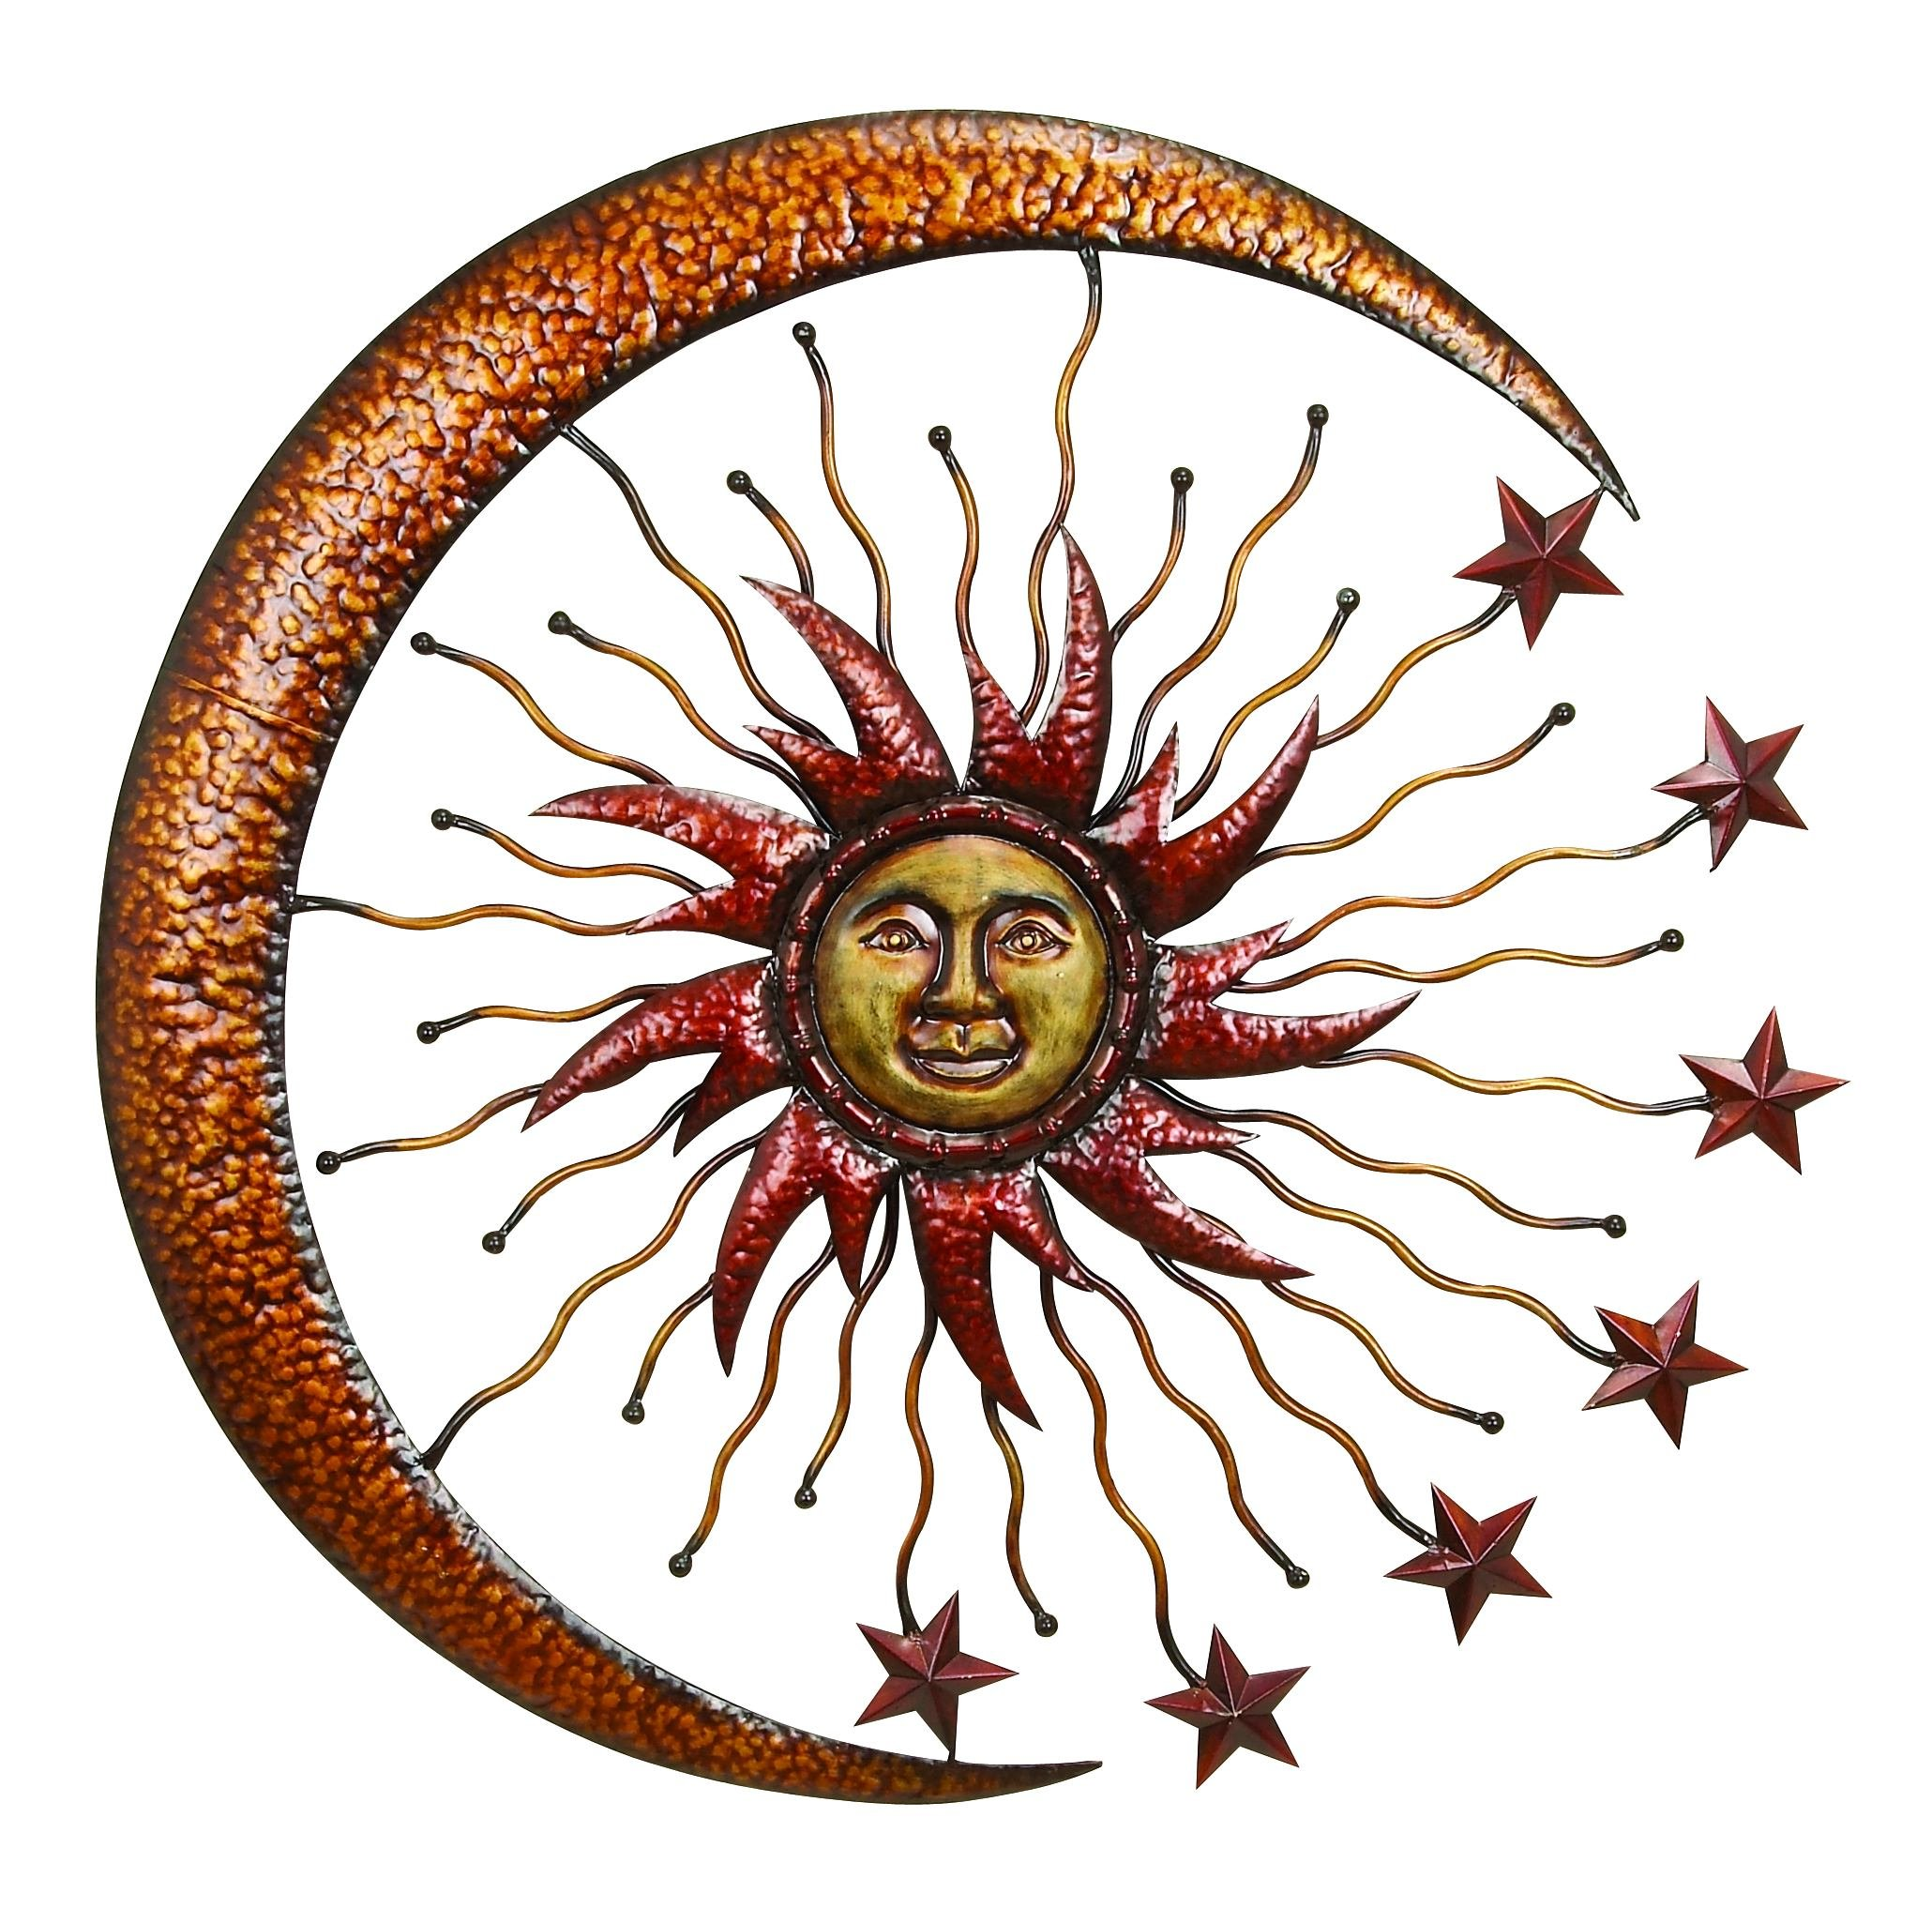 Deco 79 Eclectic Celestial-Themed Metal Wall Decor, 36''Diameter, Copper and Gold Finishes by Deco 79